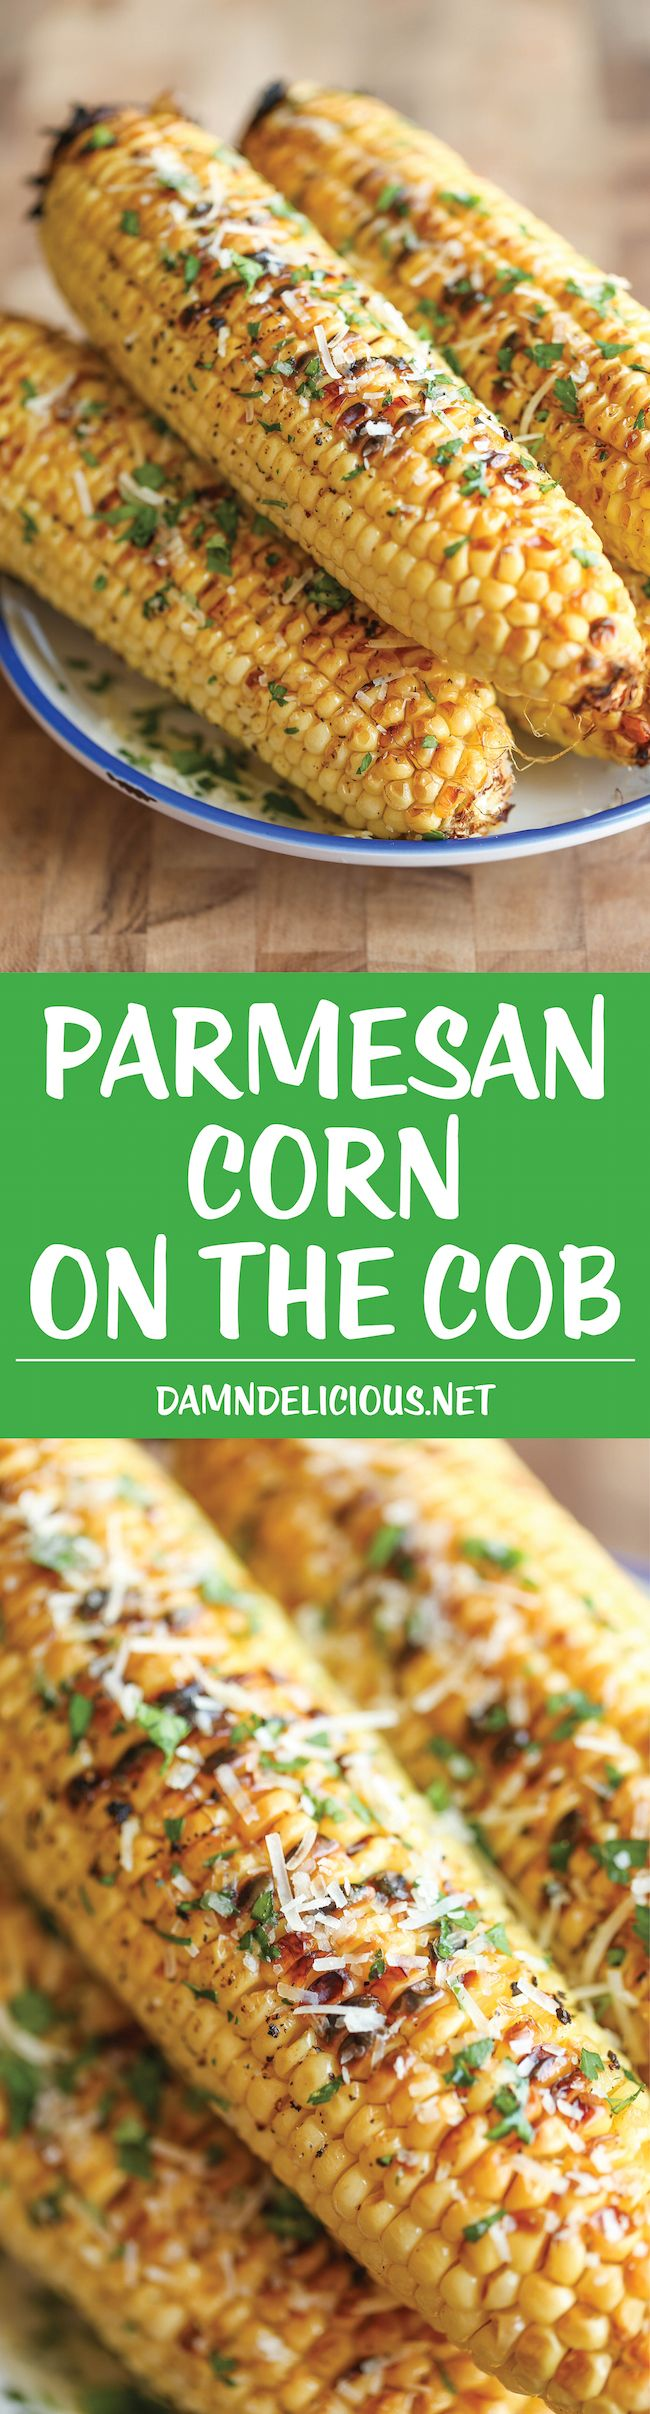 Parmesan, Cheese and Corn on the grill on Pinterest